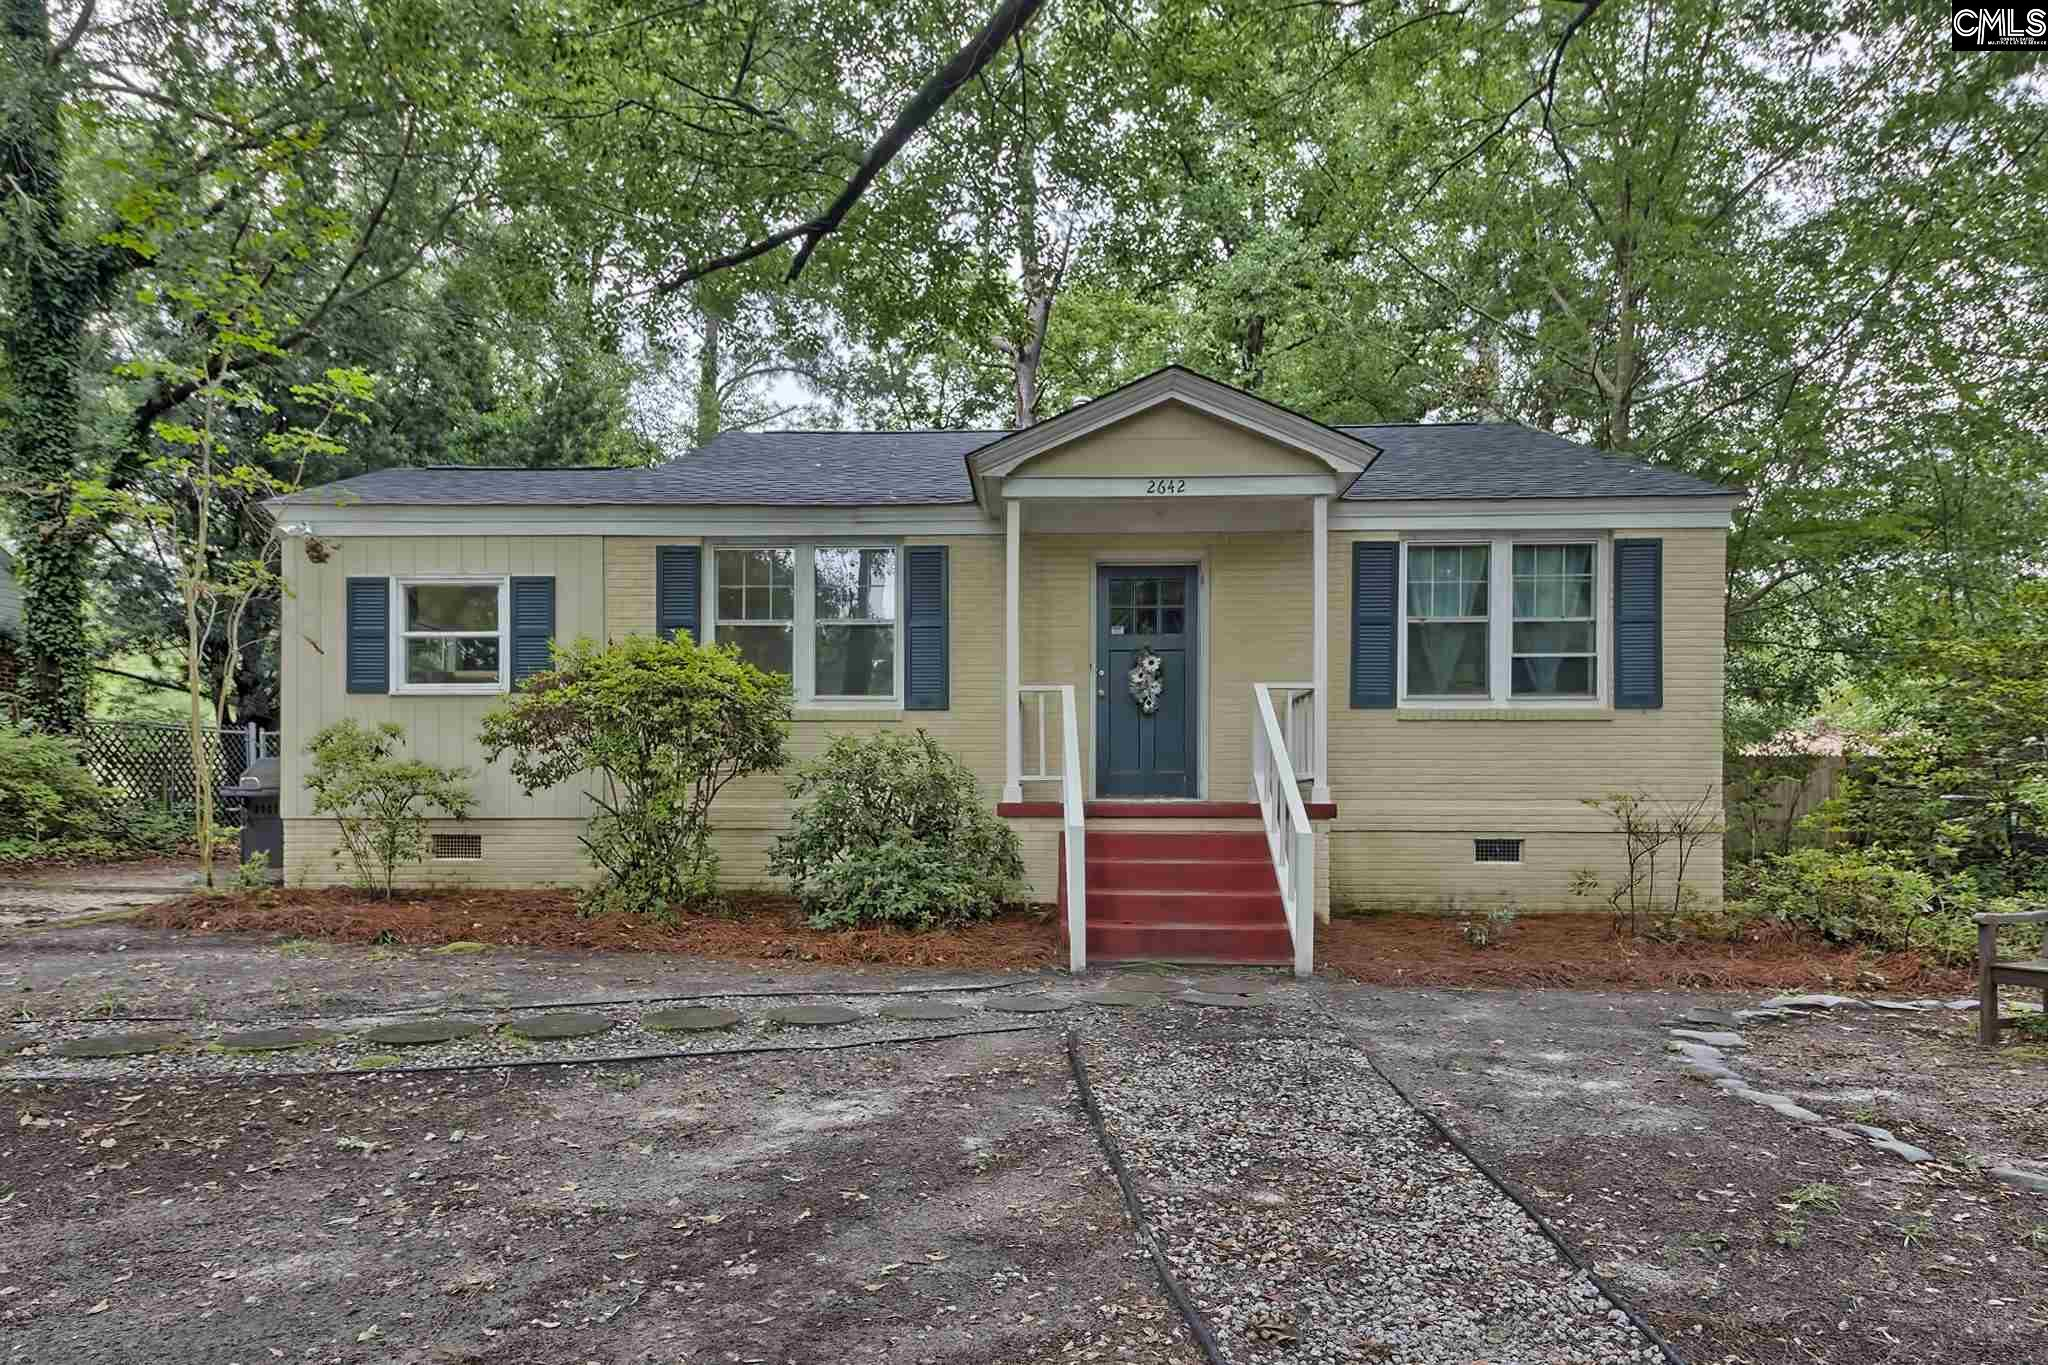 2642 Glenwood Columbia, SC 29204-2607